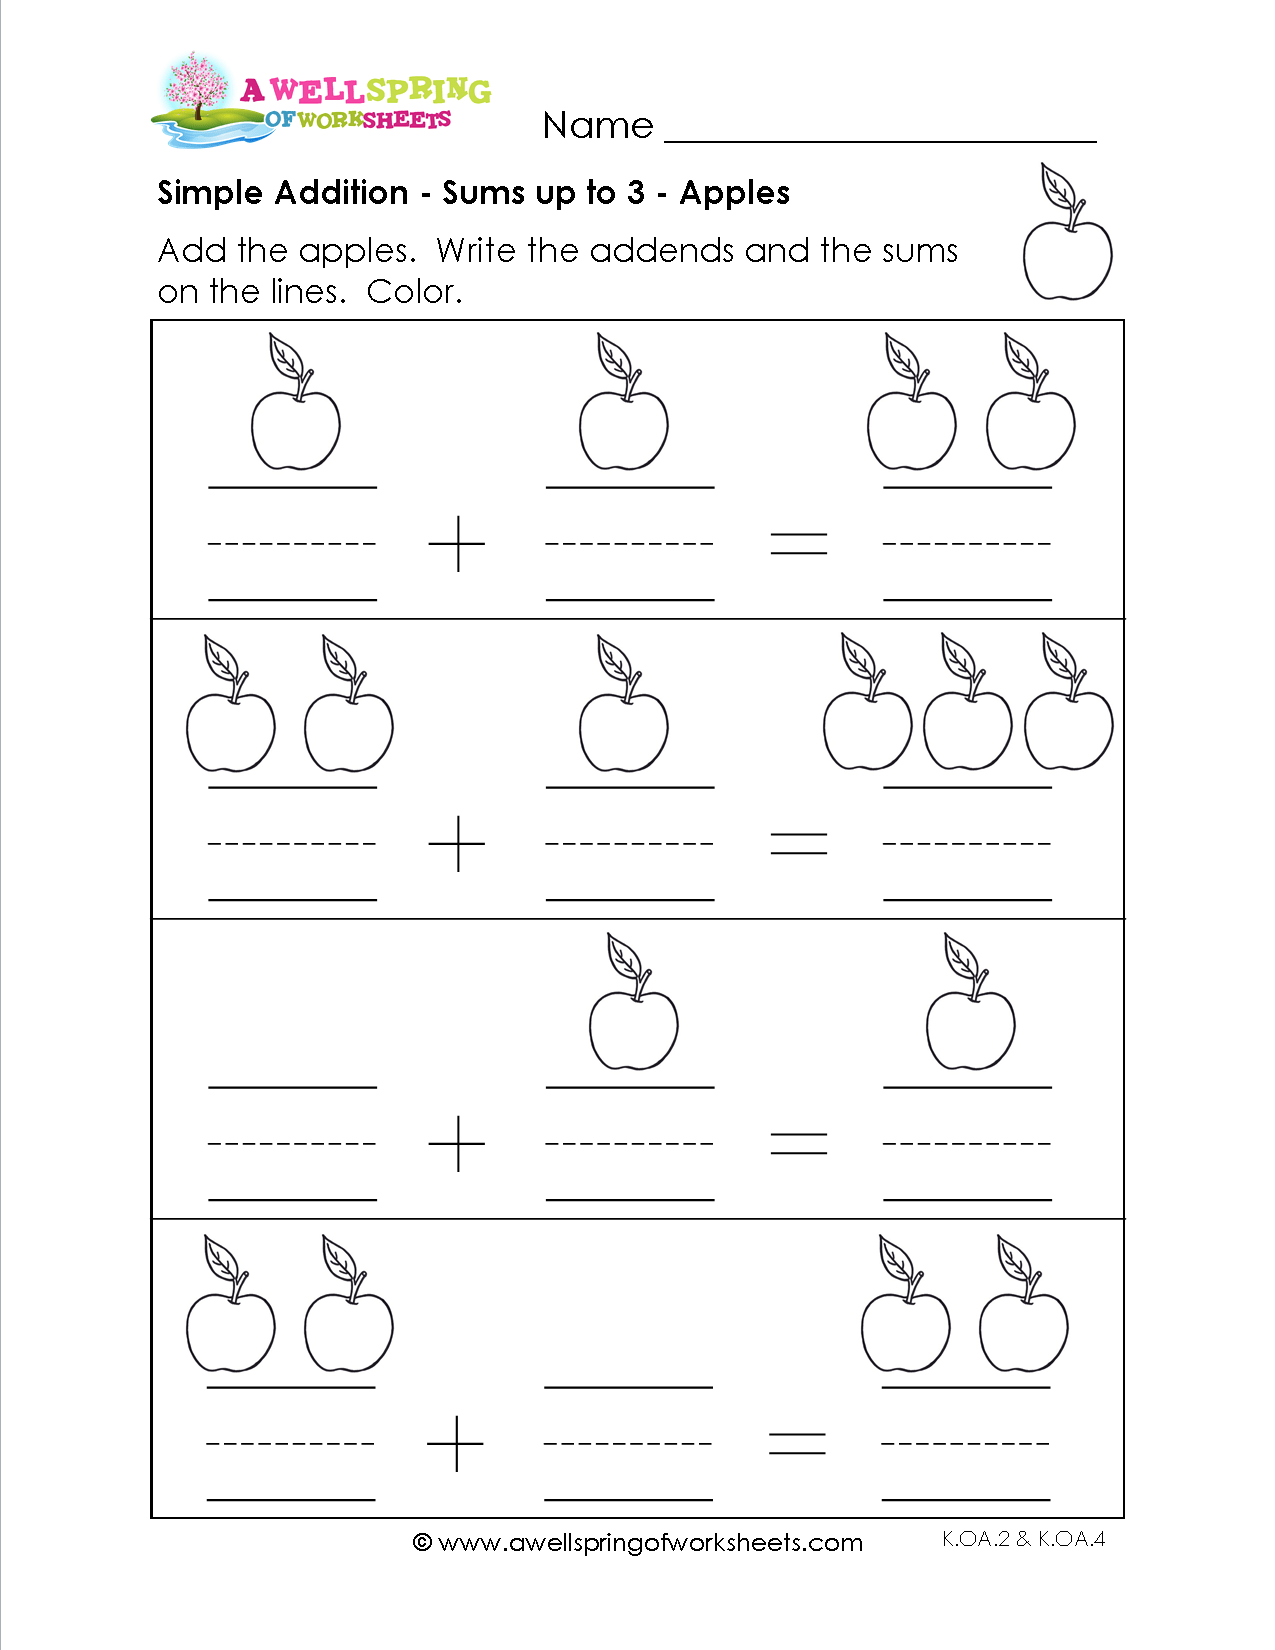 Simple Addition Count The Objects In These Simple Addition Worksheets And Write The Numerals On